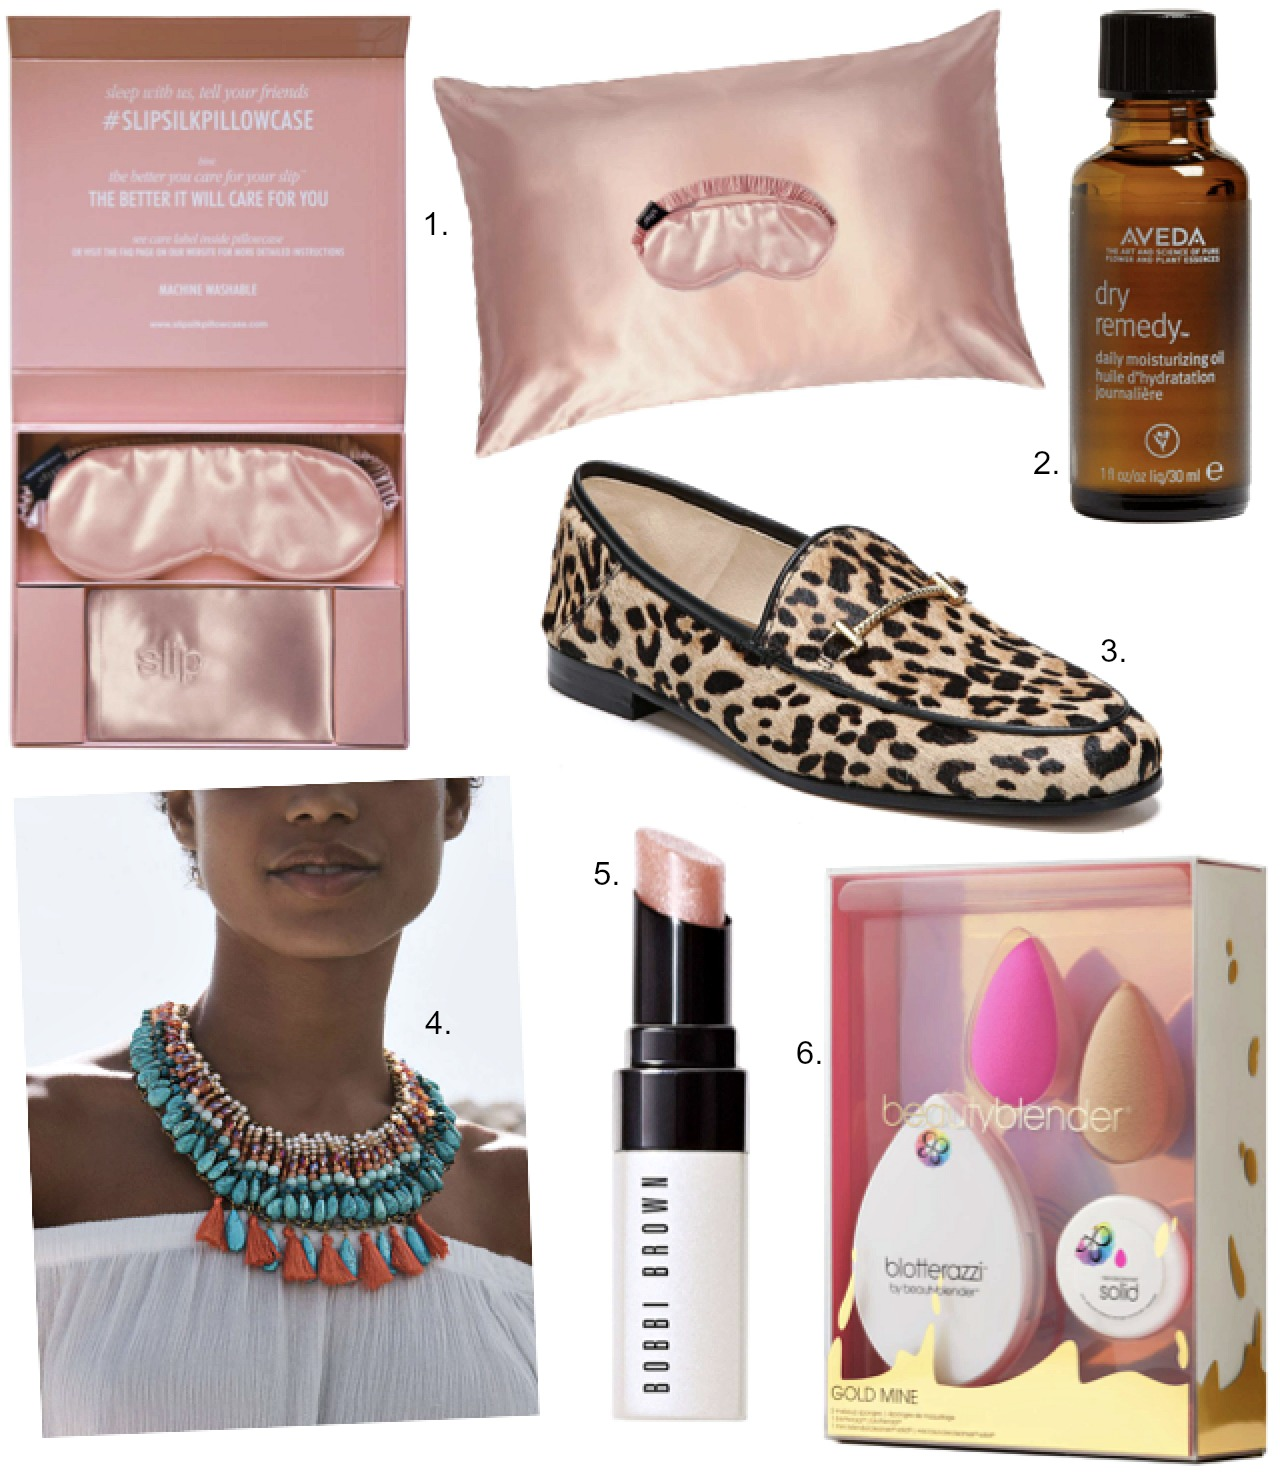 currently covet sam edelman Lior Calf Hair Leopard Loafers slip silk pillow beauty blender sale gifts to self